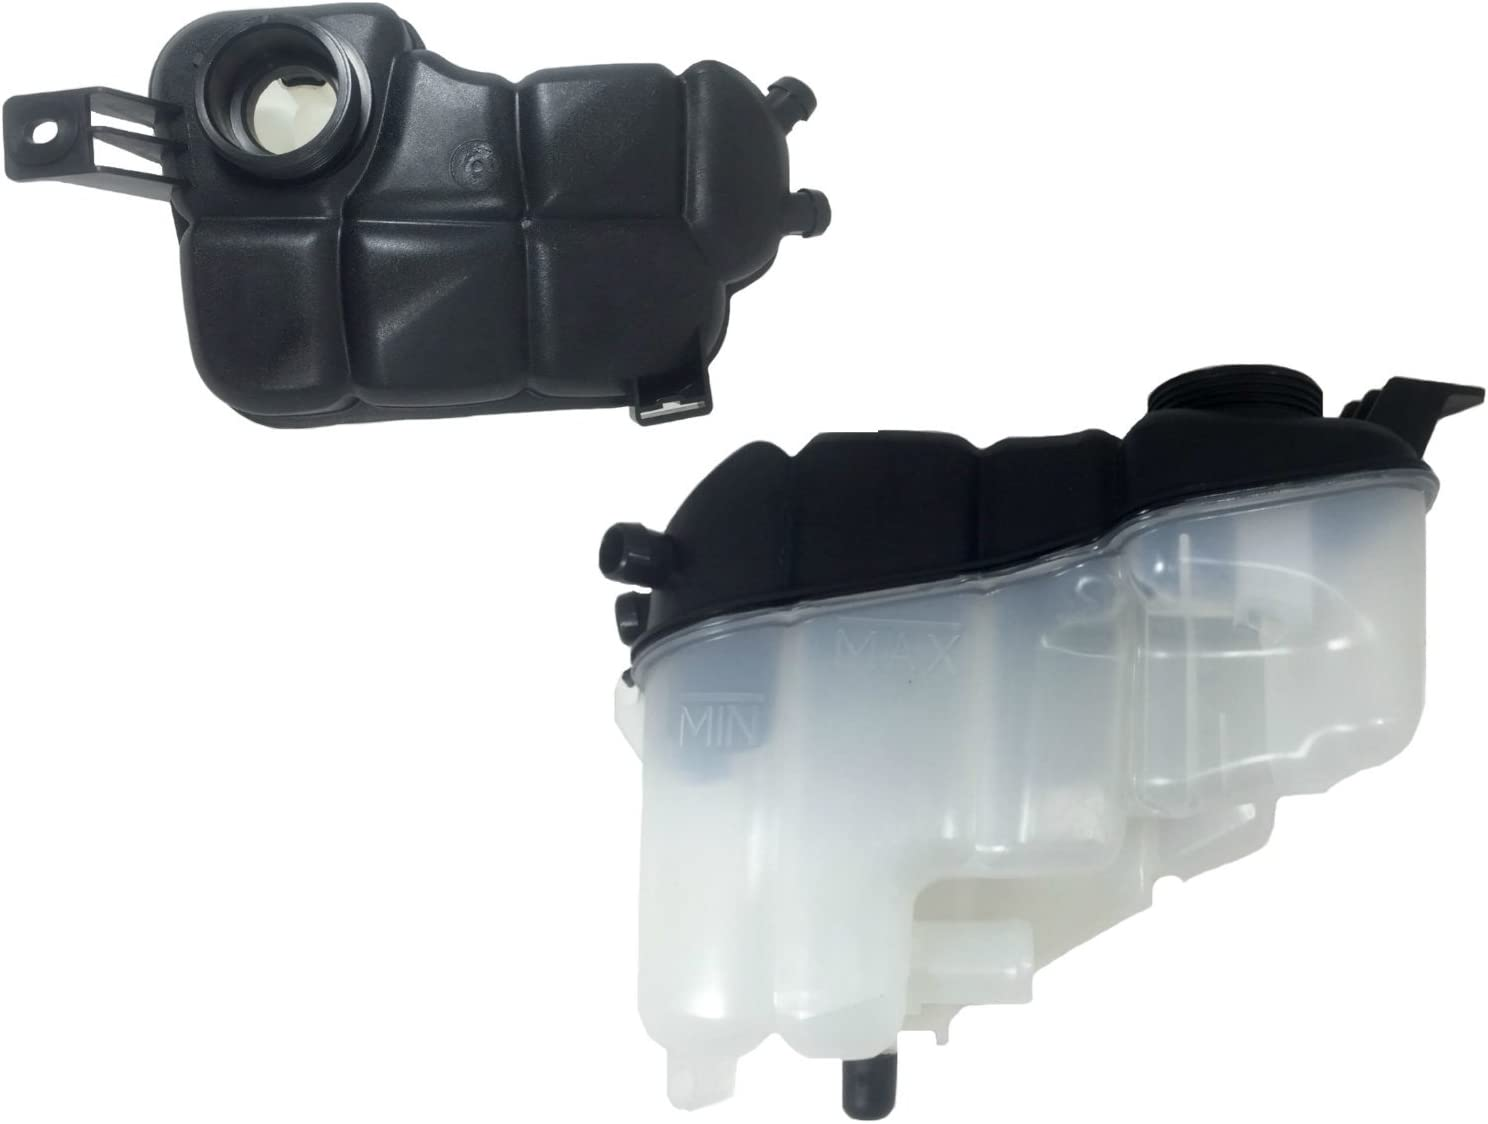 Coolant Recovery Reservoir Expansion Tank for Volvo S60 S80 V60 V60 Cross Country V70 XC60 XC70 Premium 31200320 New